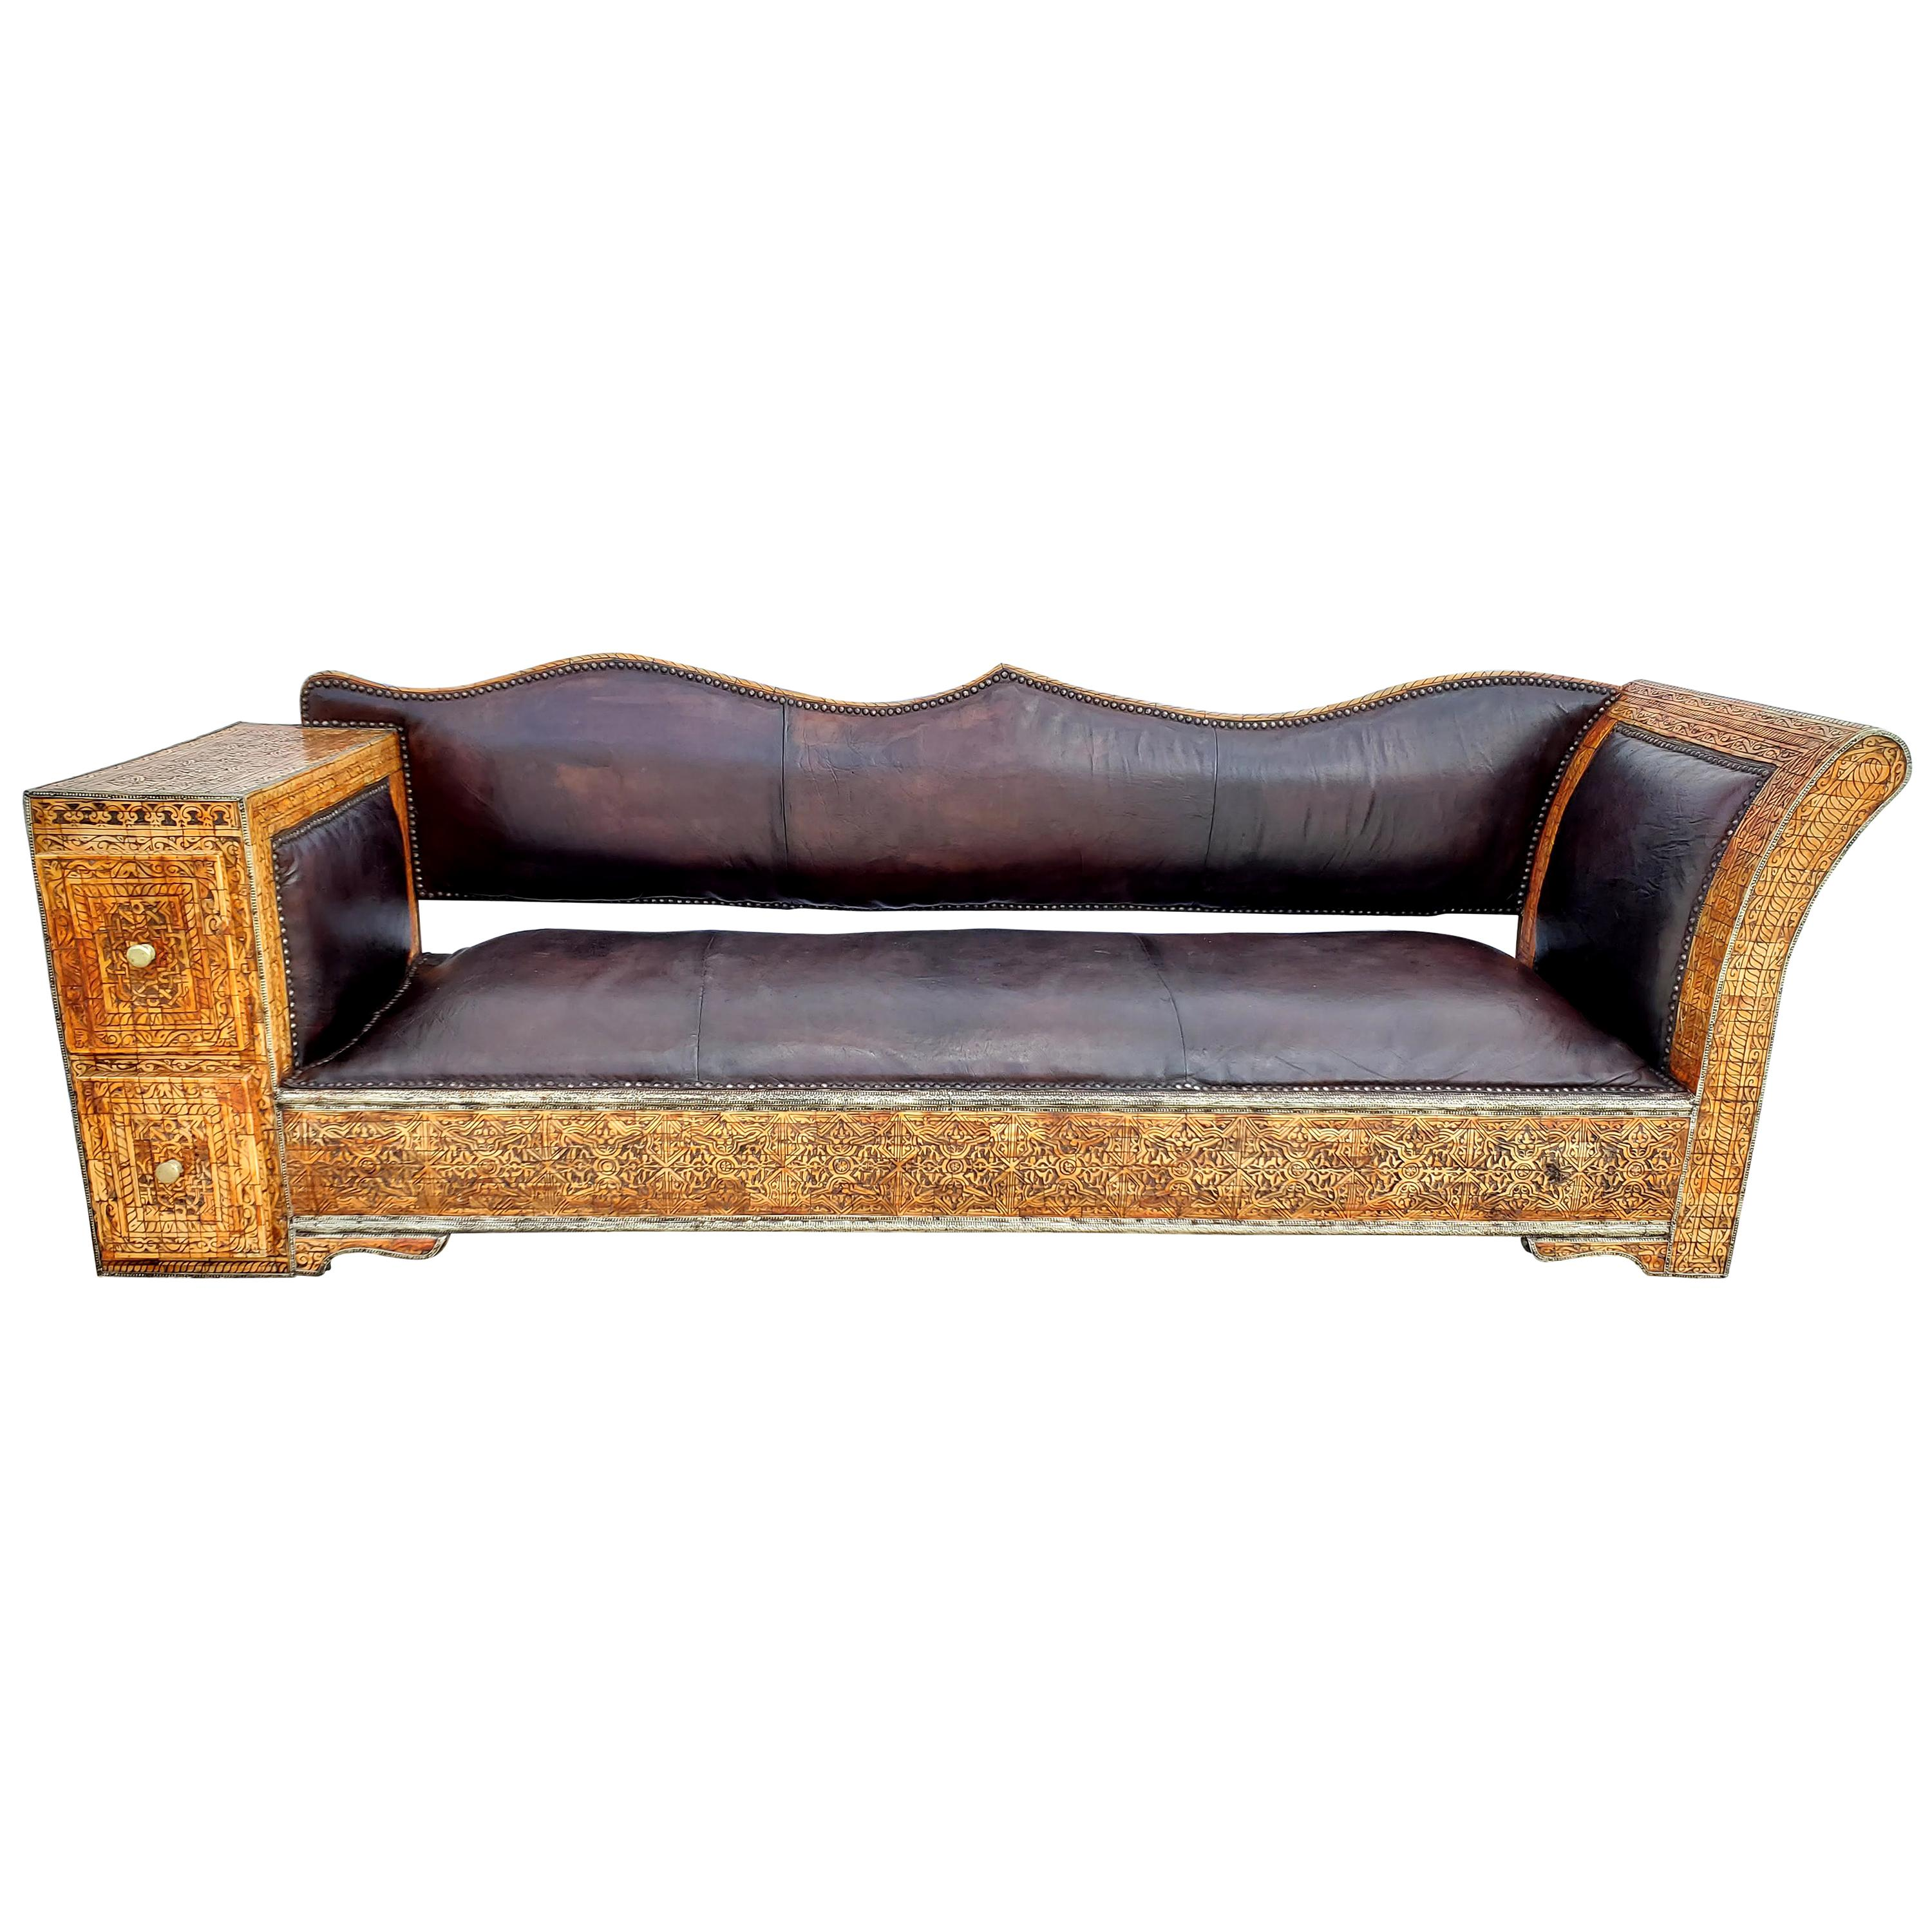 Rare and Unique Moroccan Leather Sofa or Bench